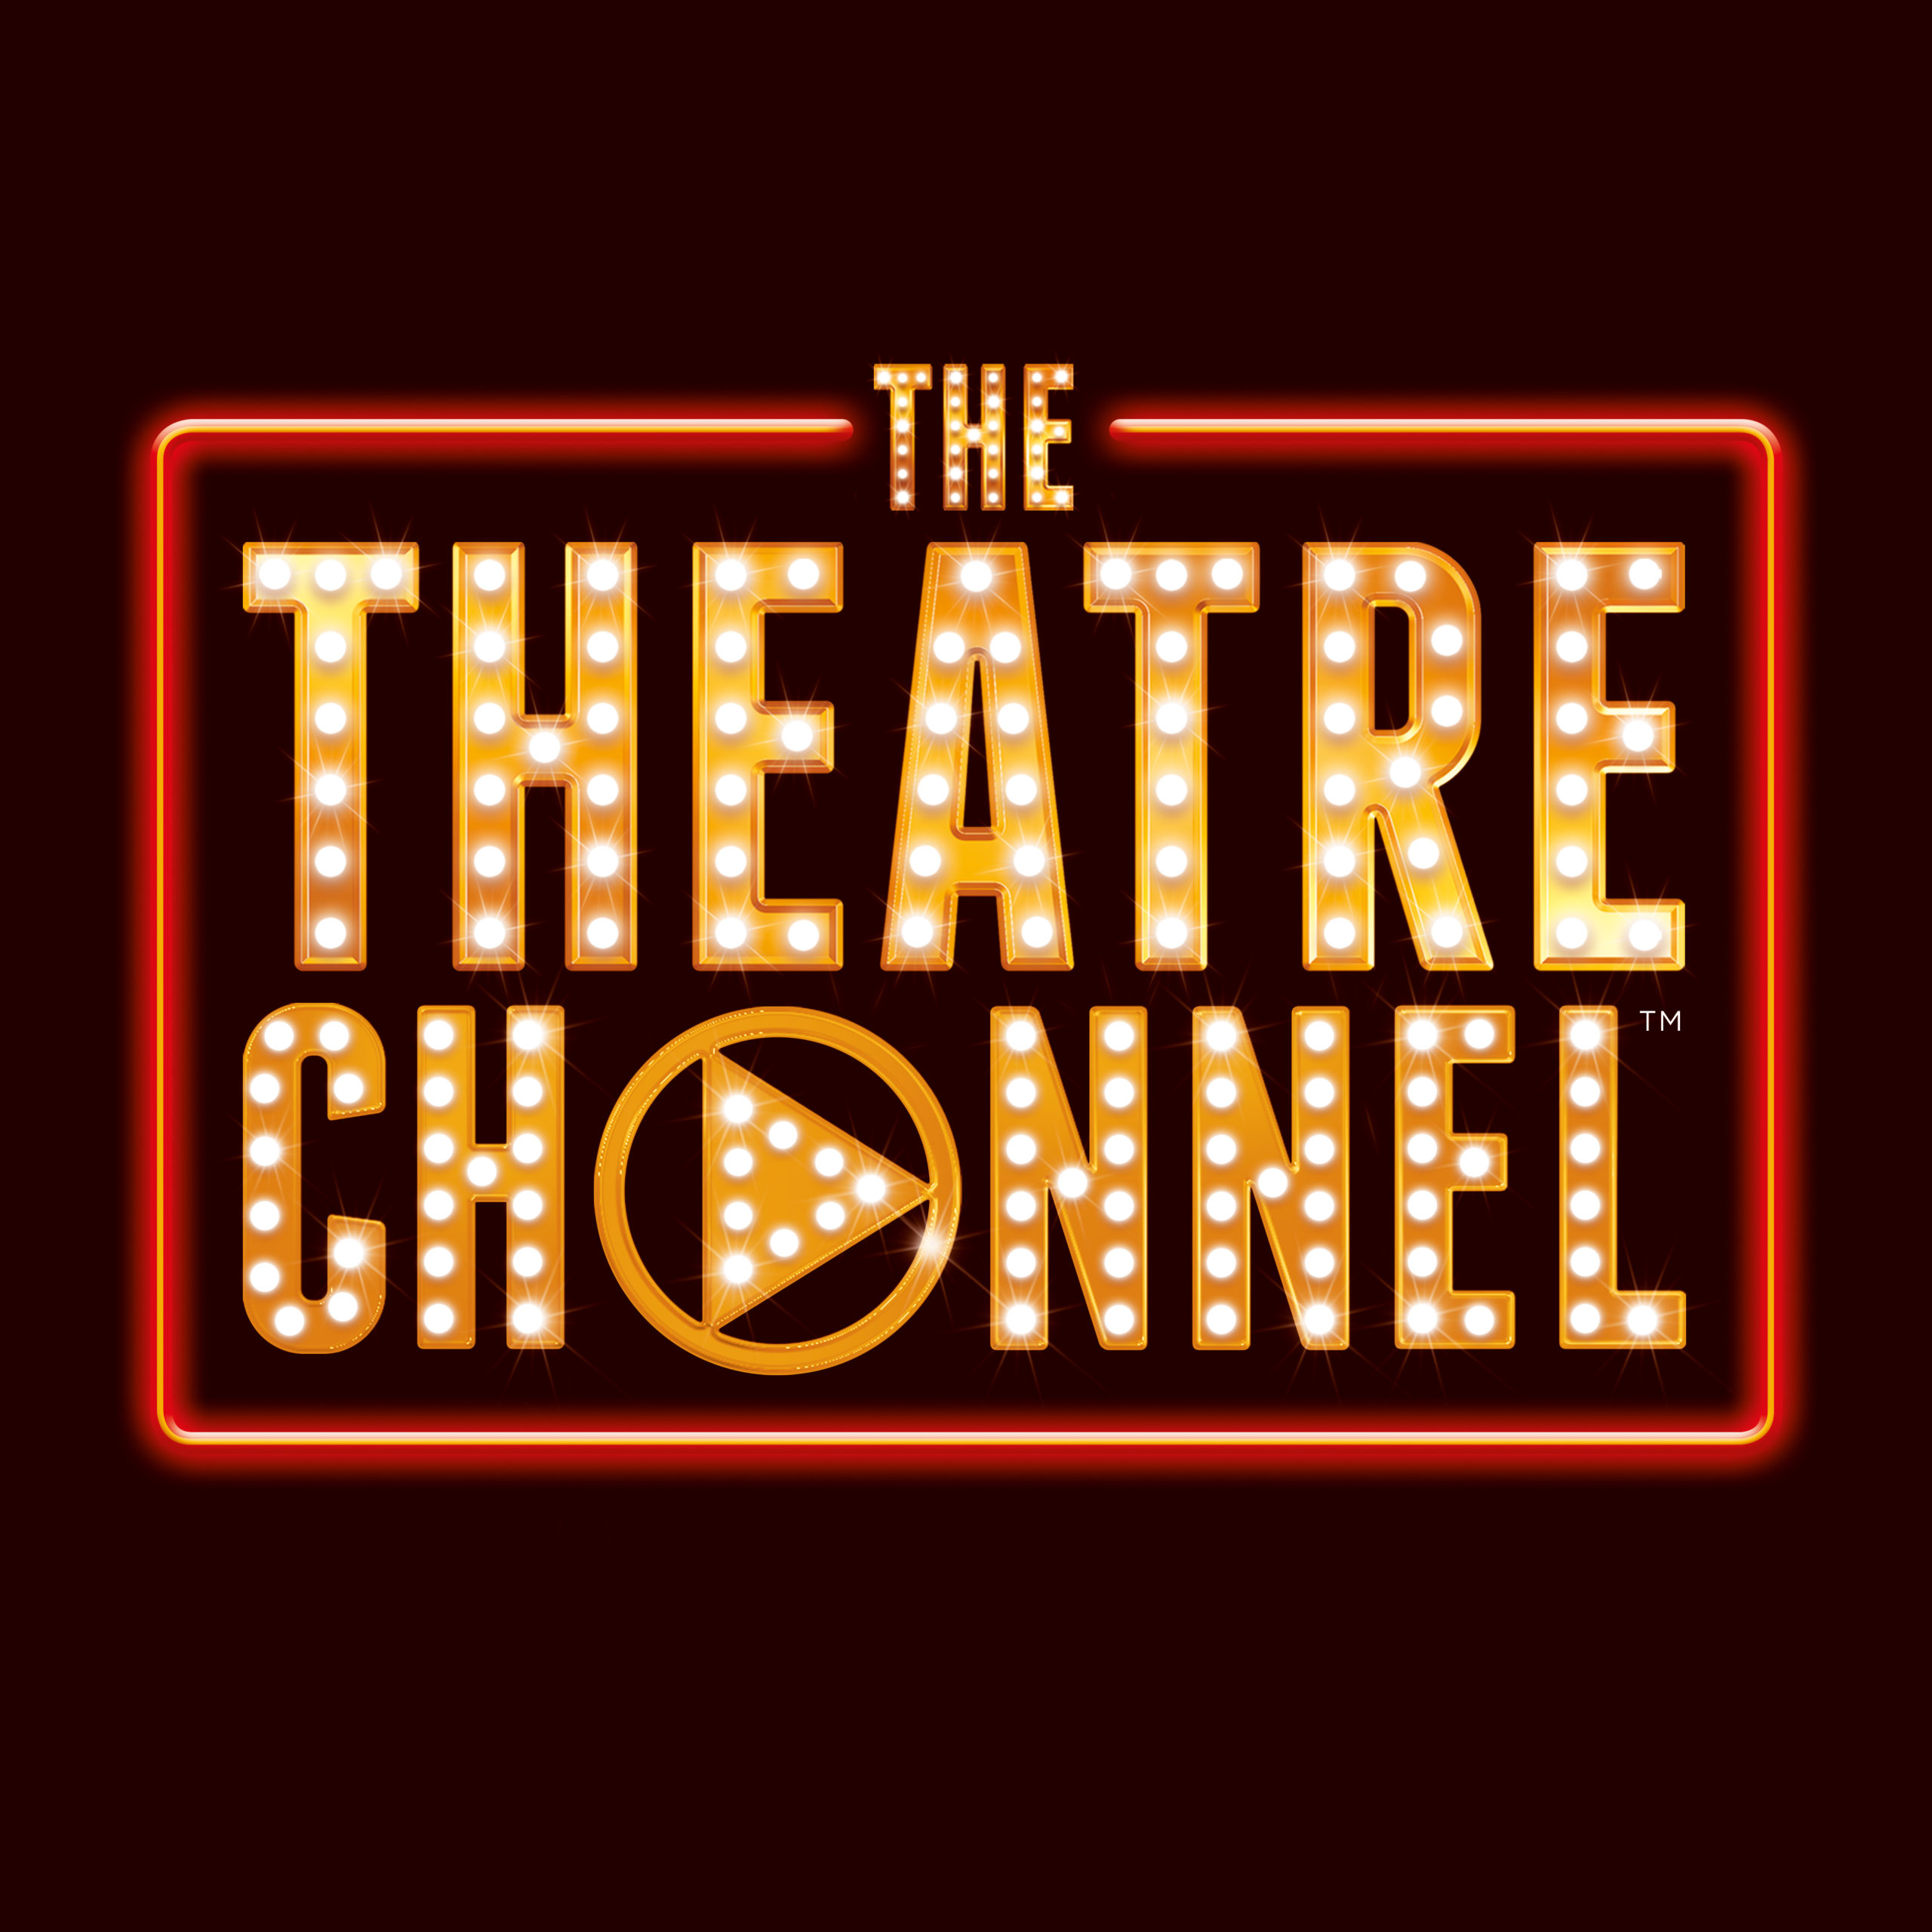 The Theatre Channel